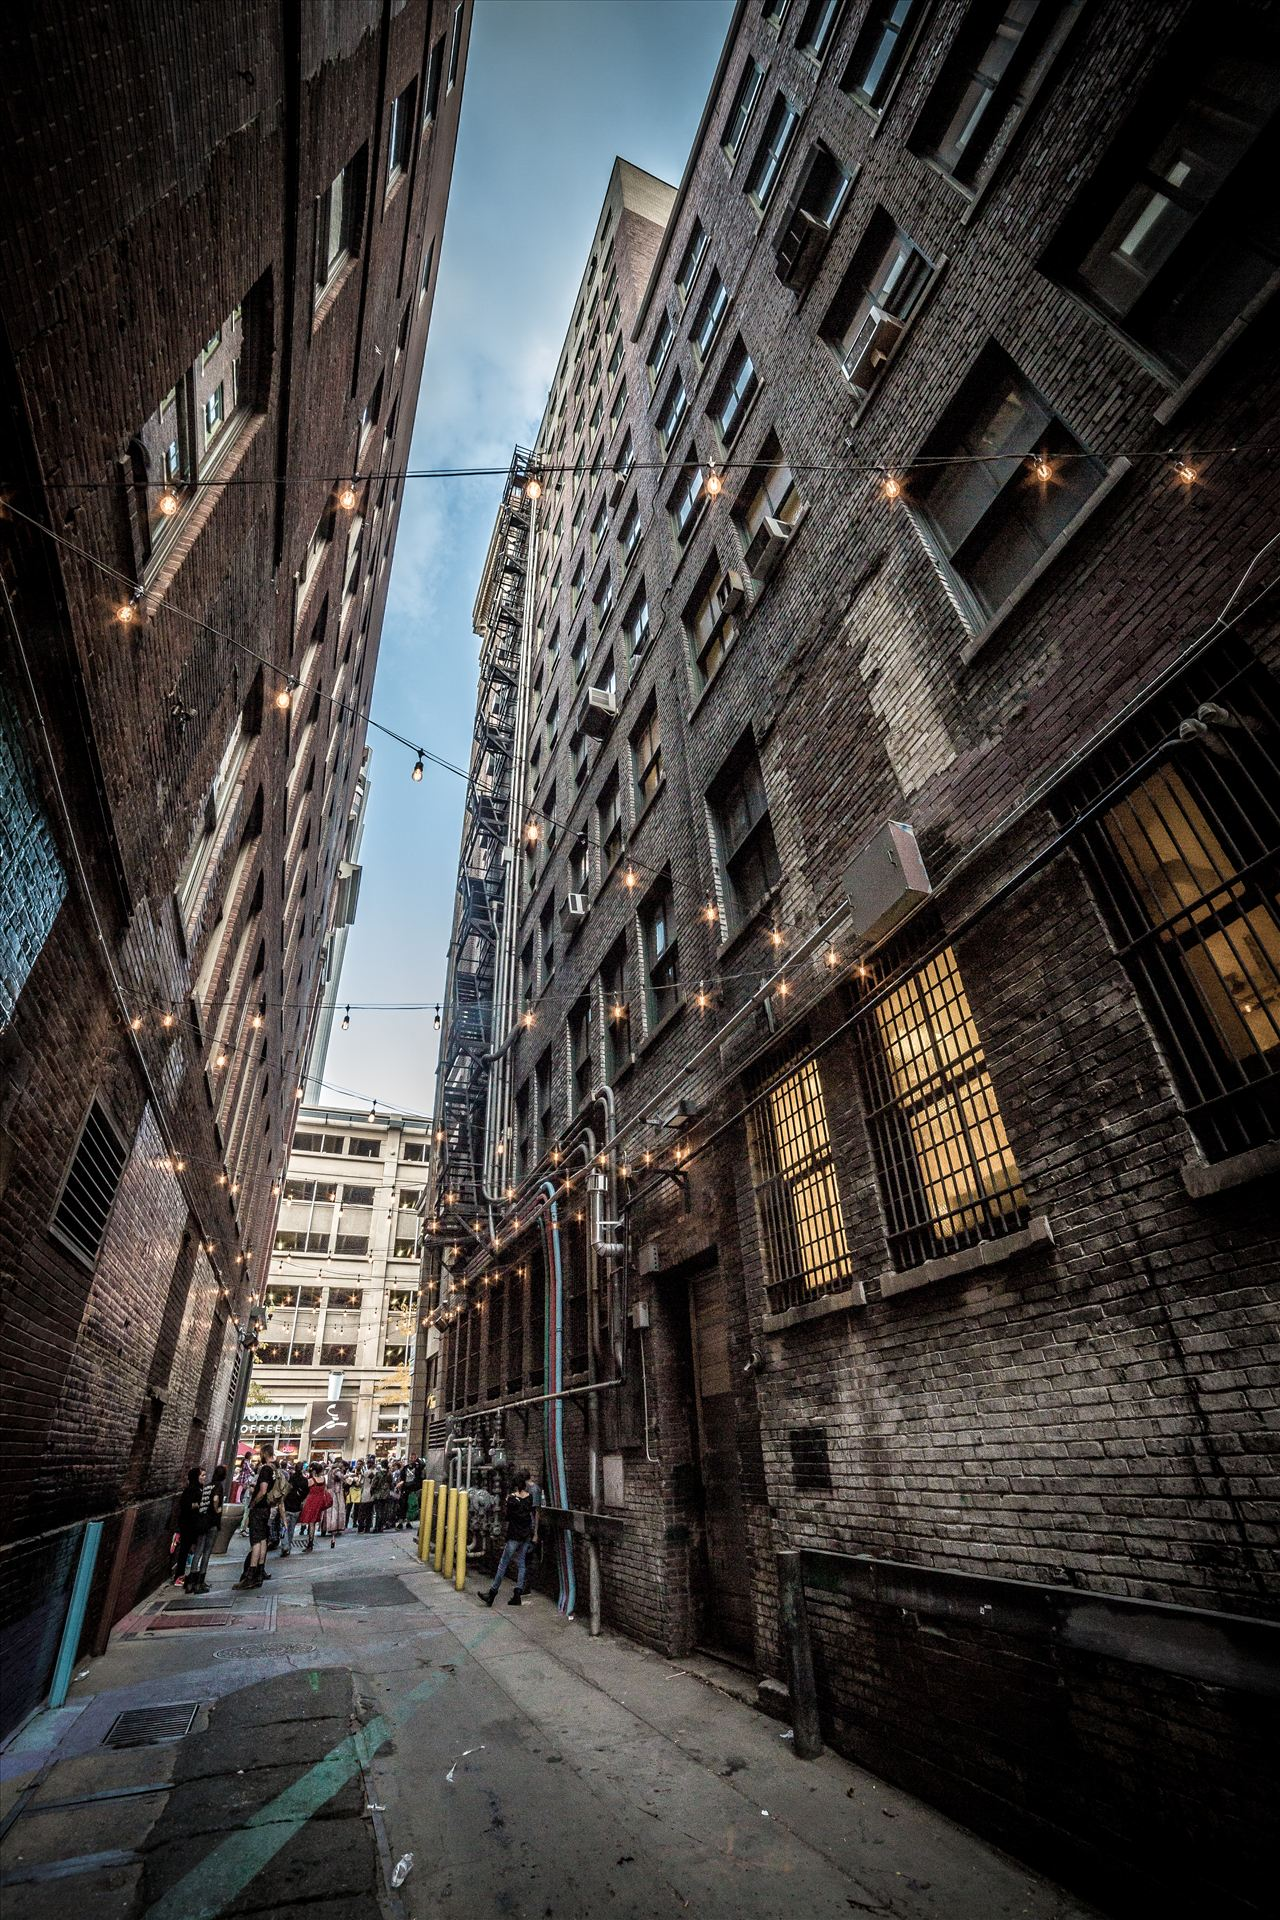 Denver Zombie Crawl 2015 17 - A back alley in Denver Colorado, during the 2015 Zombie Crawl. by D Scott Smith